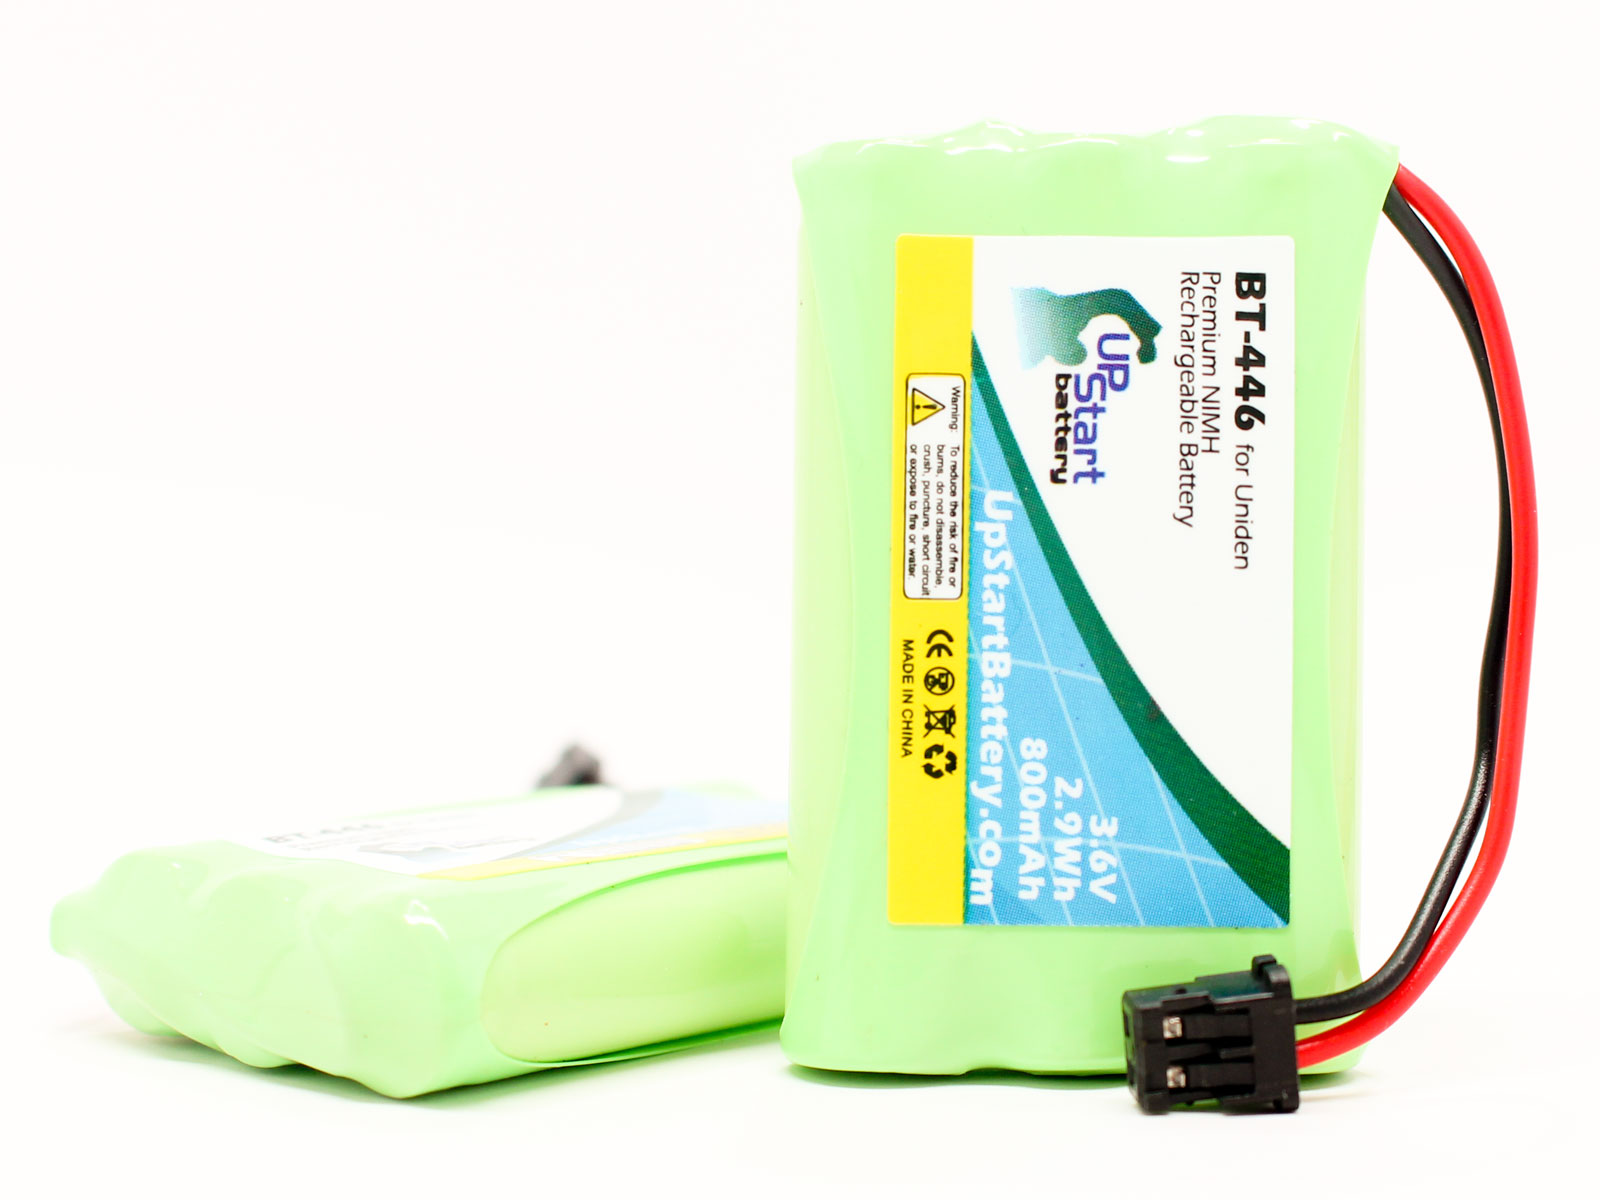 UpStart Battery 2x Pack - Uniden BT446 Battery - Replacement for Uniden Cordless Phone Battery (800mAh, 3.6V, NI-MH) at Sears.com